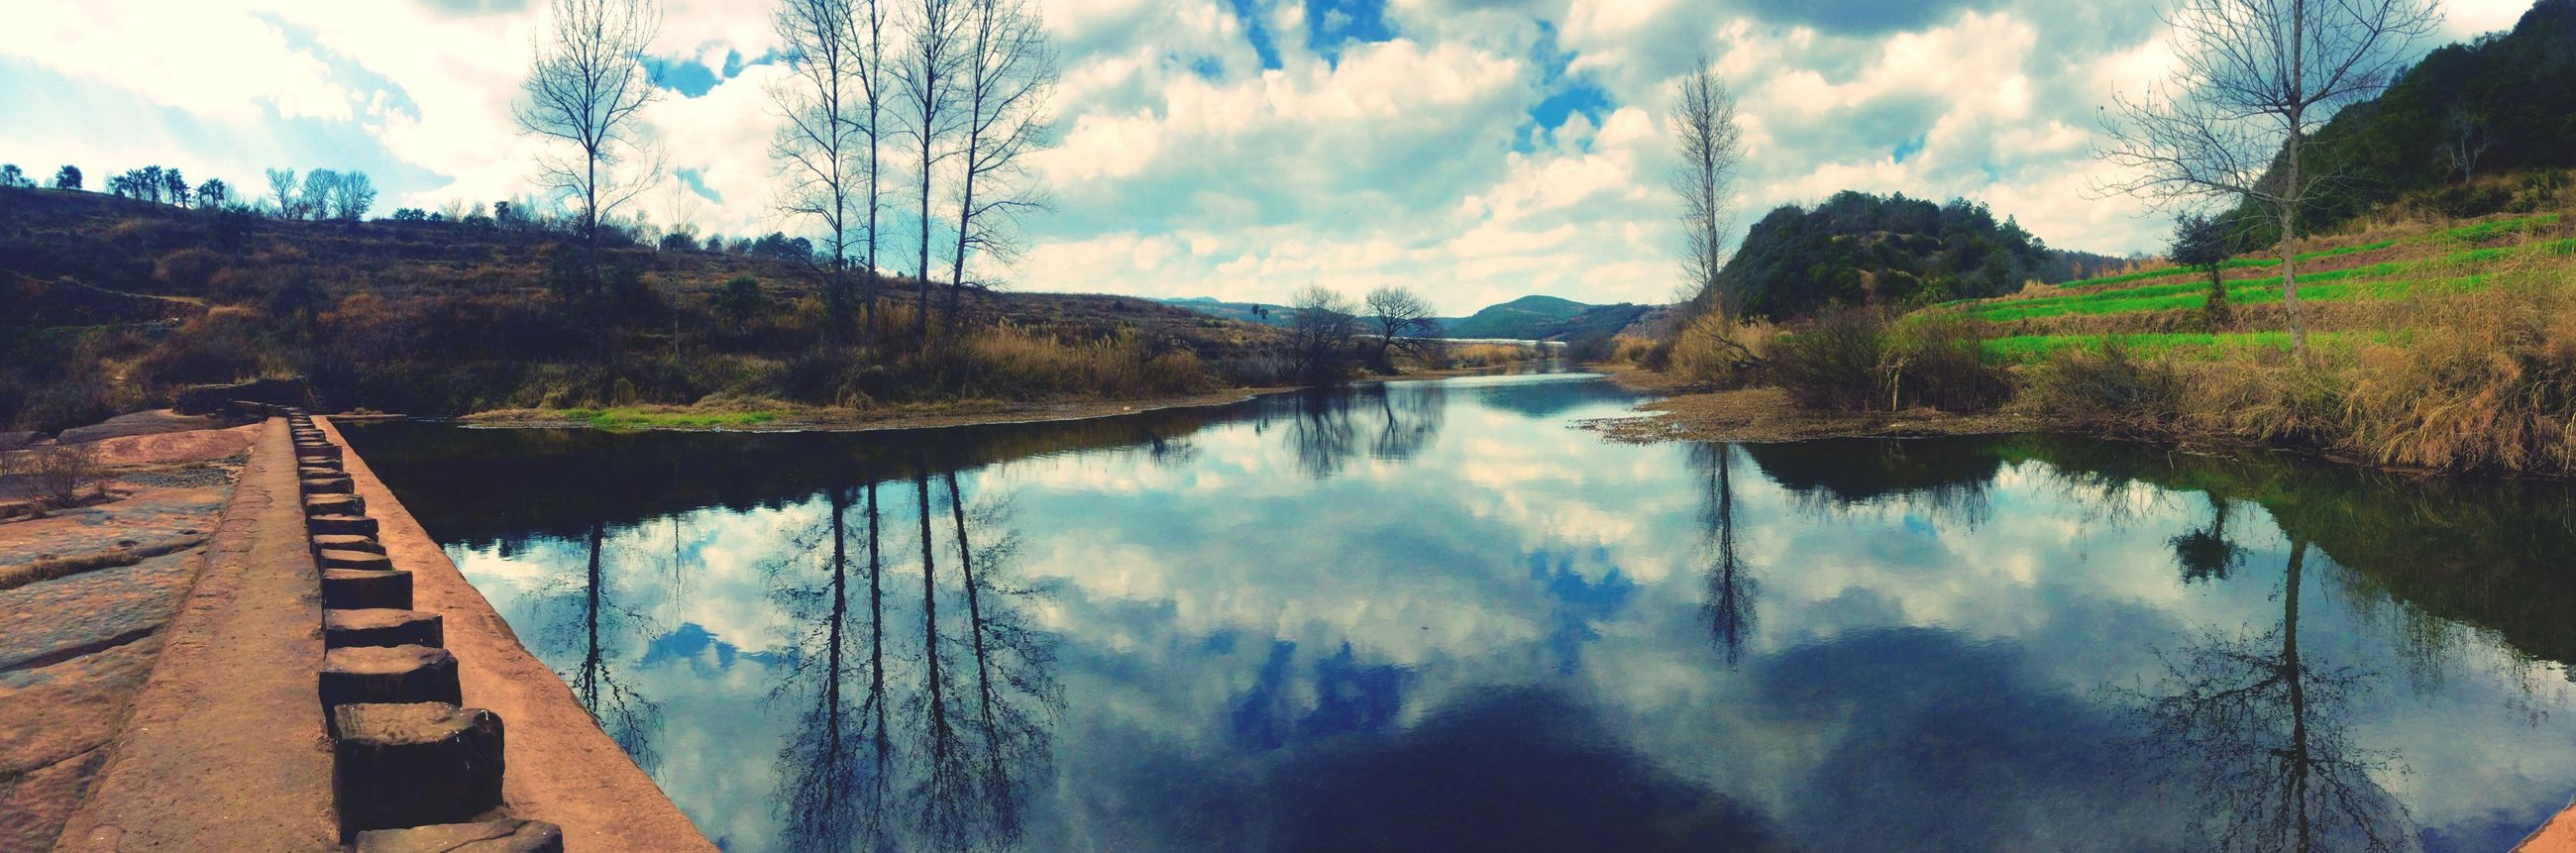 sky, reflection, water, lake, tranquil scene, tranquility, cloud - sky, scenics, mountain, beauty in nature, cloud, nature, tree, standing water, blue, panoramic, cloudy, mountain range, river, idyllic